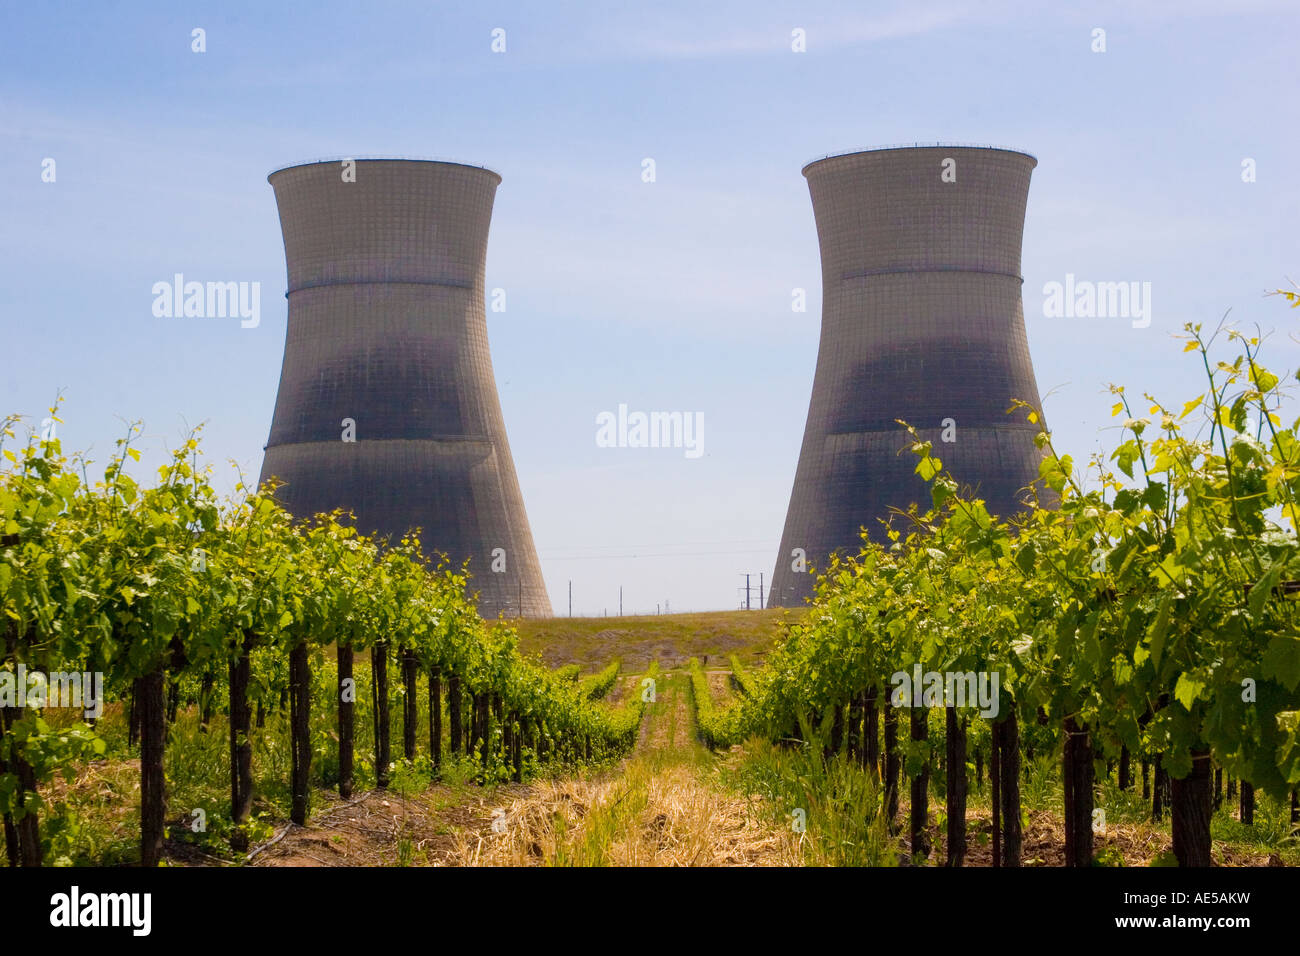 Cooling towers at Rancho Seco decommissioned nuclear power plant with rows of grapes growing in vineyard surrounding - Stock Image